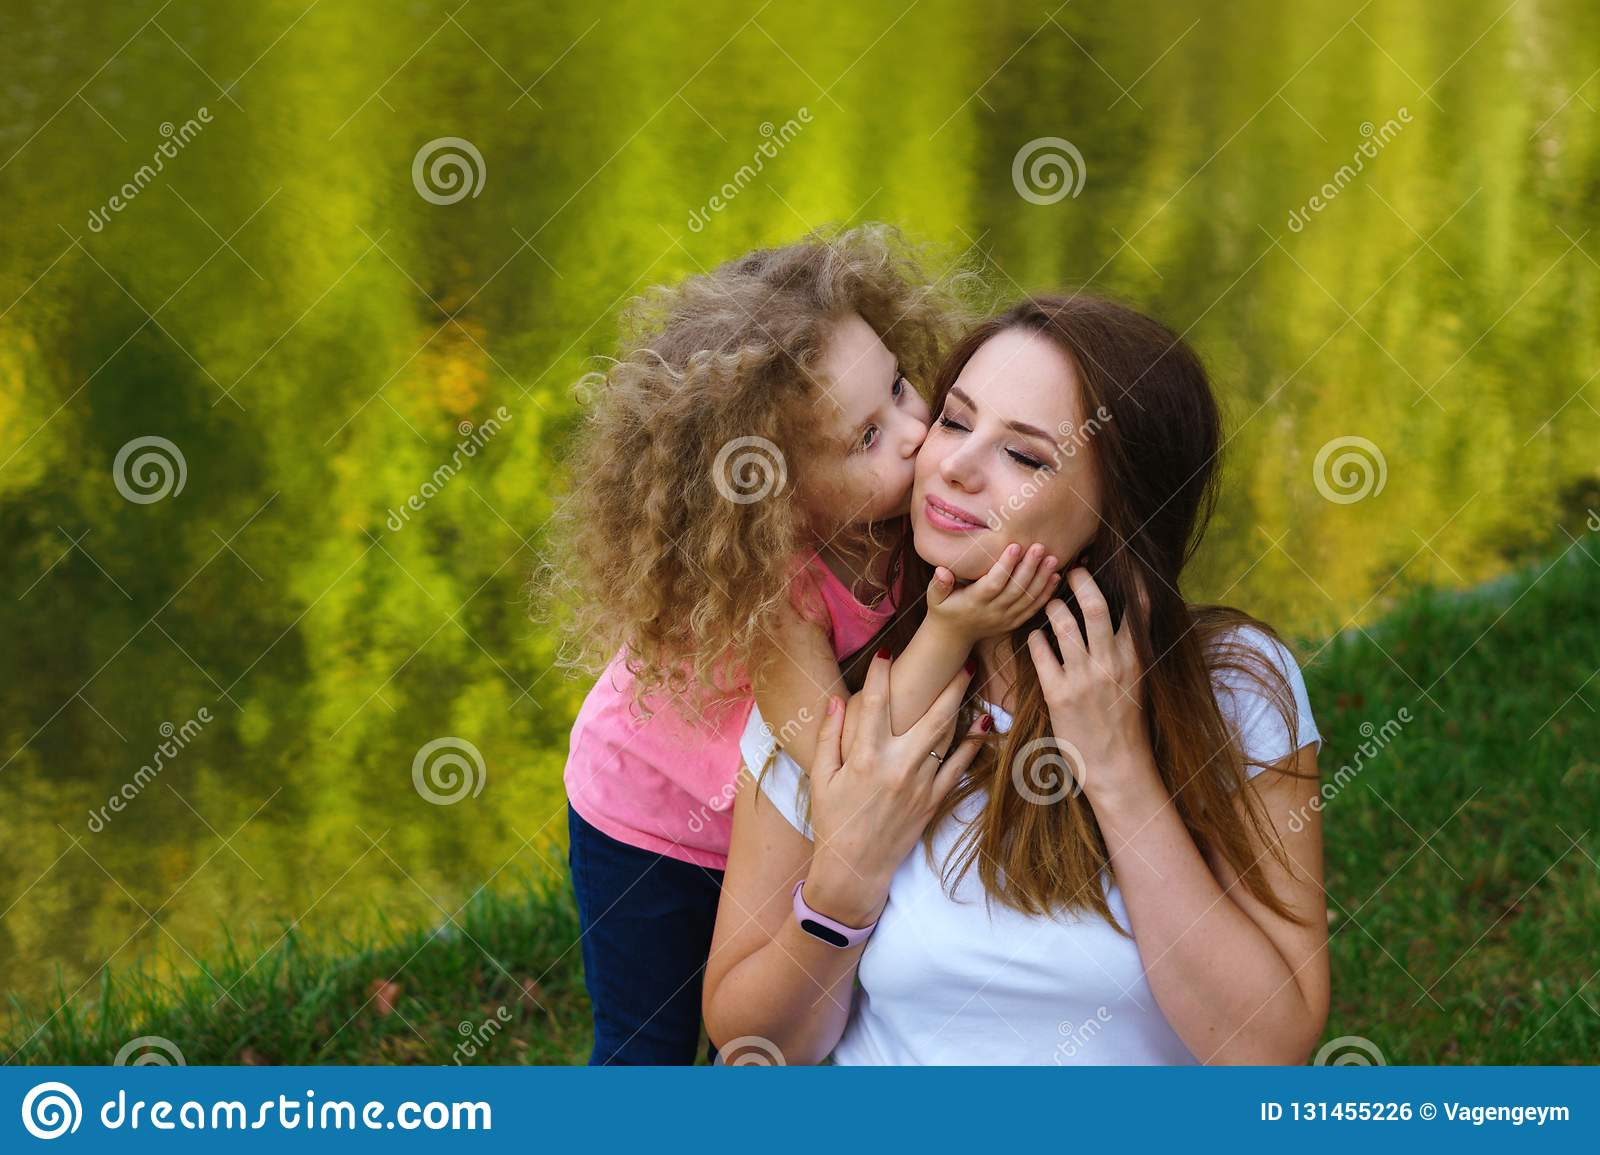 Family time. Mother and daughter on river bank. Little girl hugs and kisses mother